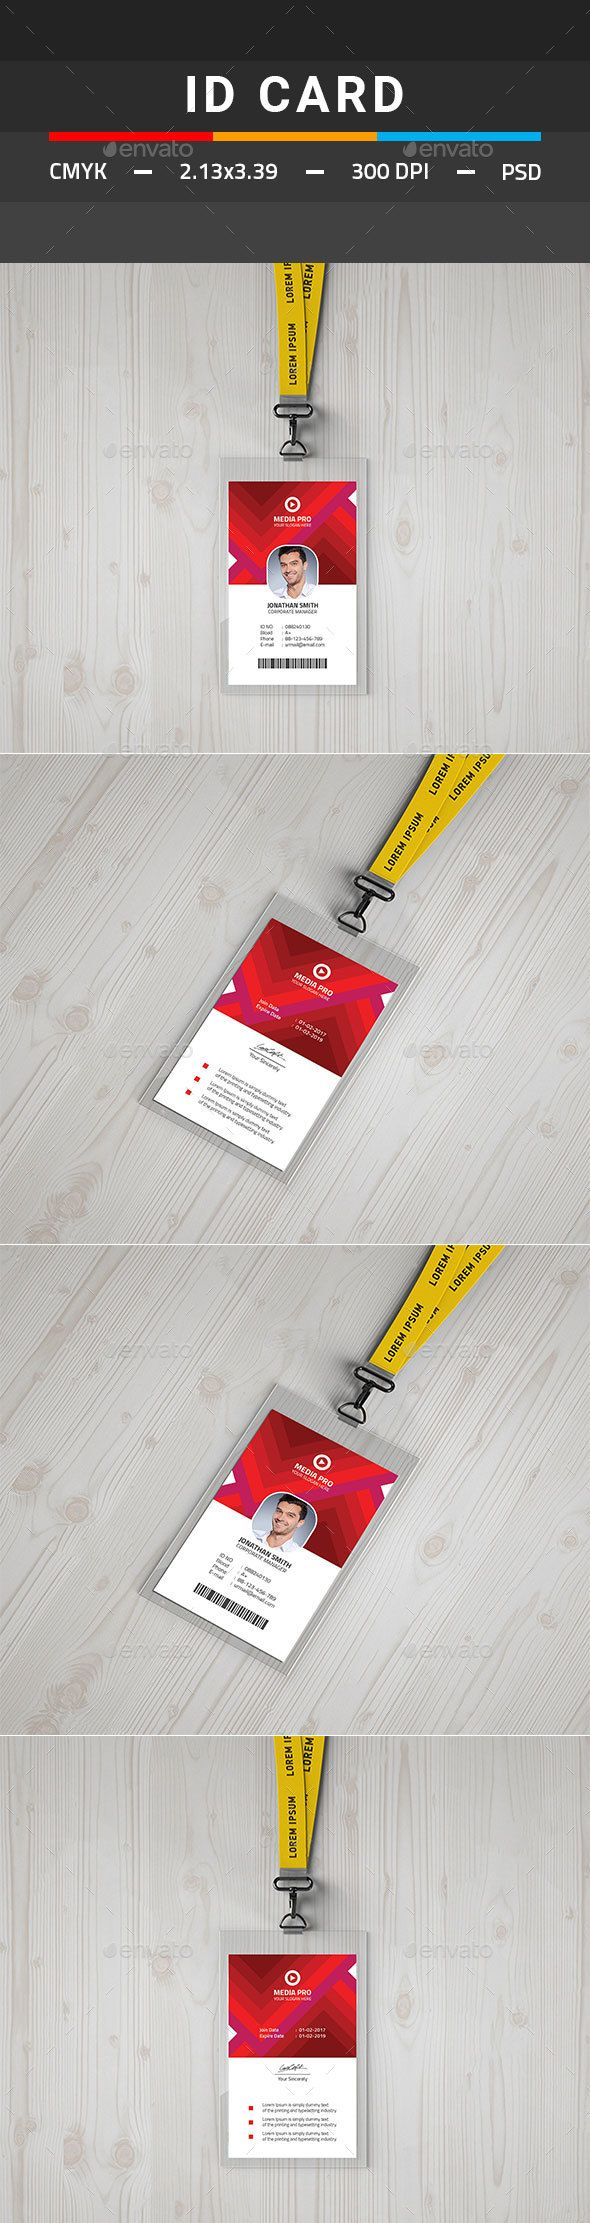 #ID #Card - #Miscellaneous Print Templates Download here: https://graphicriver.net/item/id-card/19713336?ref=alena994